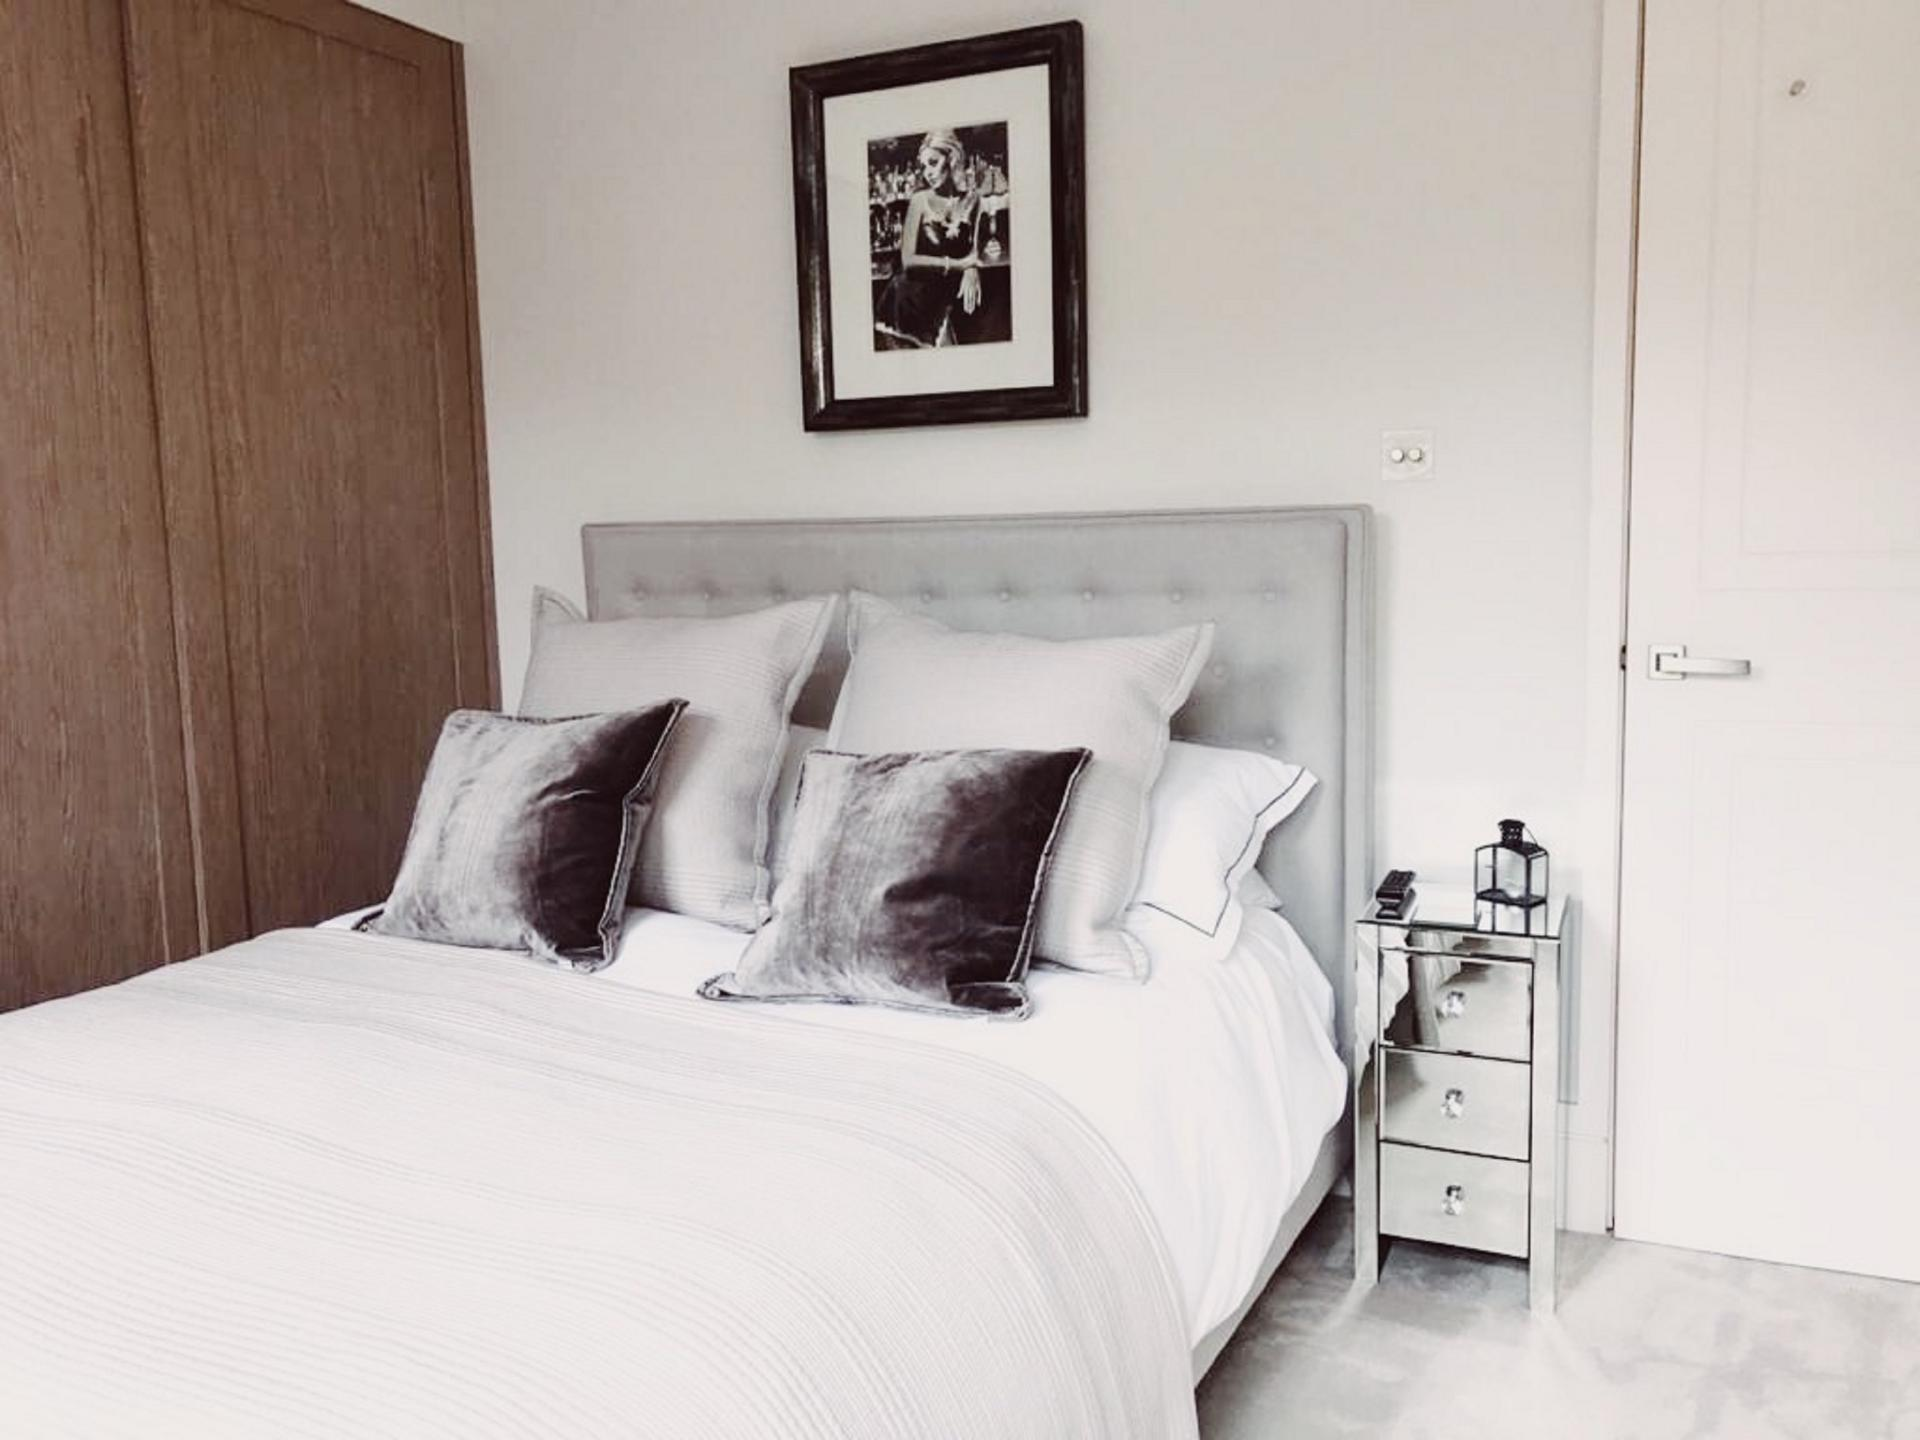 Bedroom at Old Chelsea Apartment, Chelsea, London